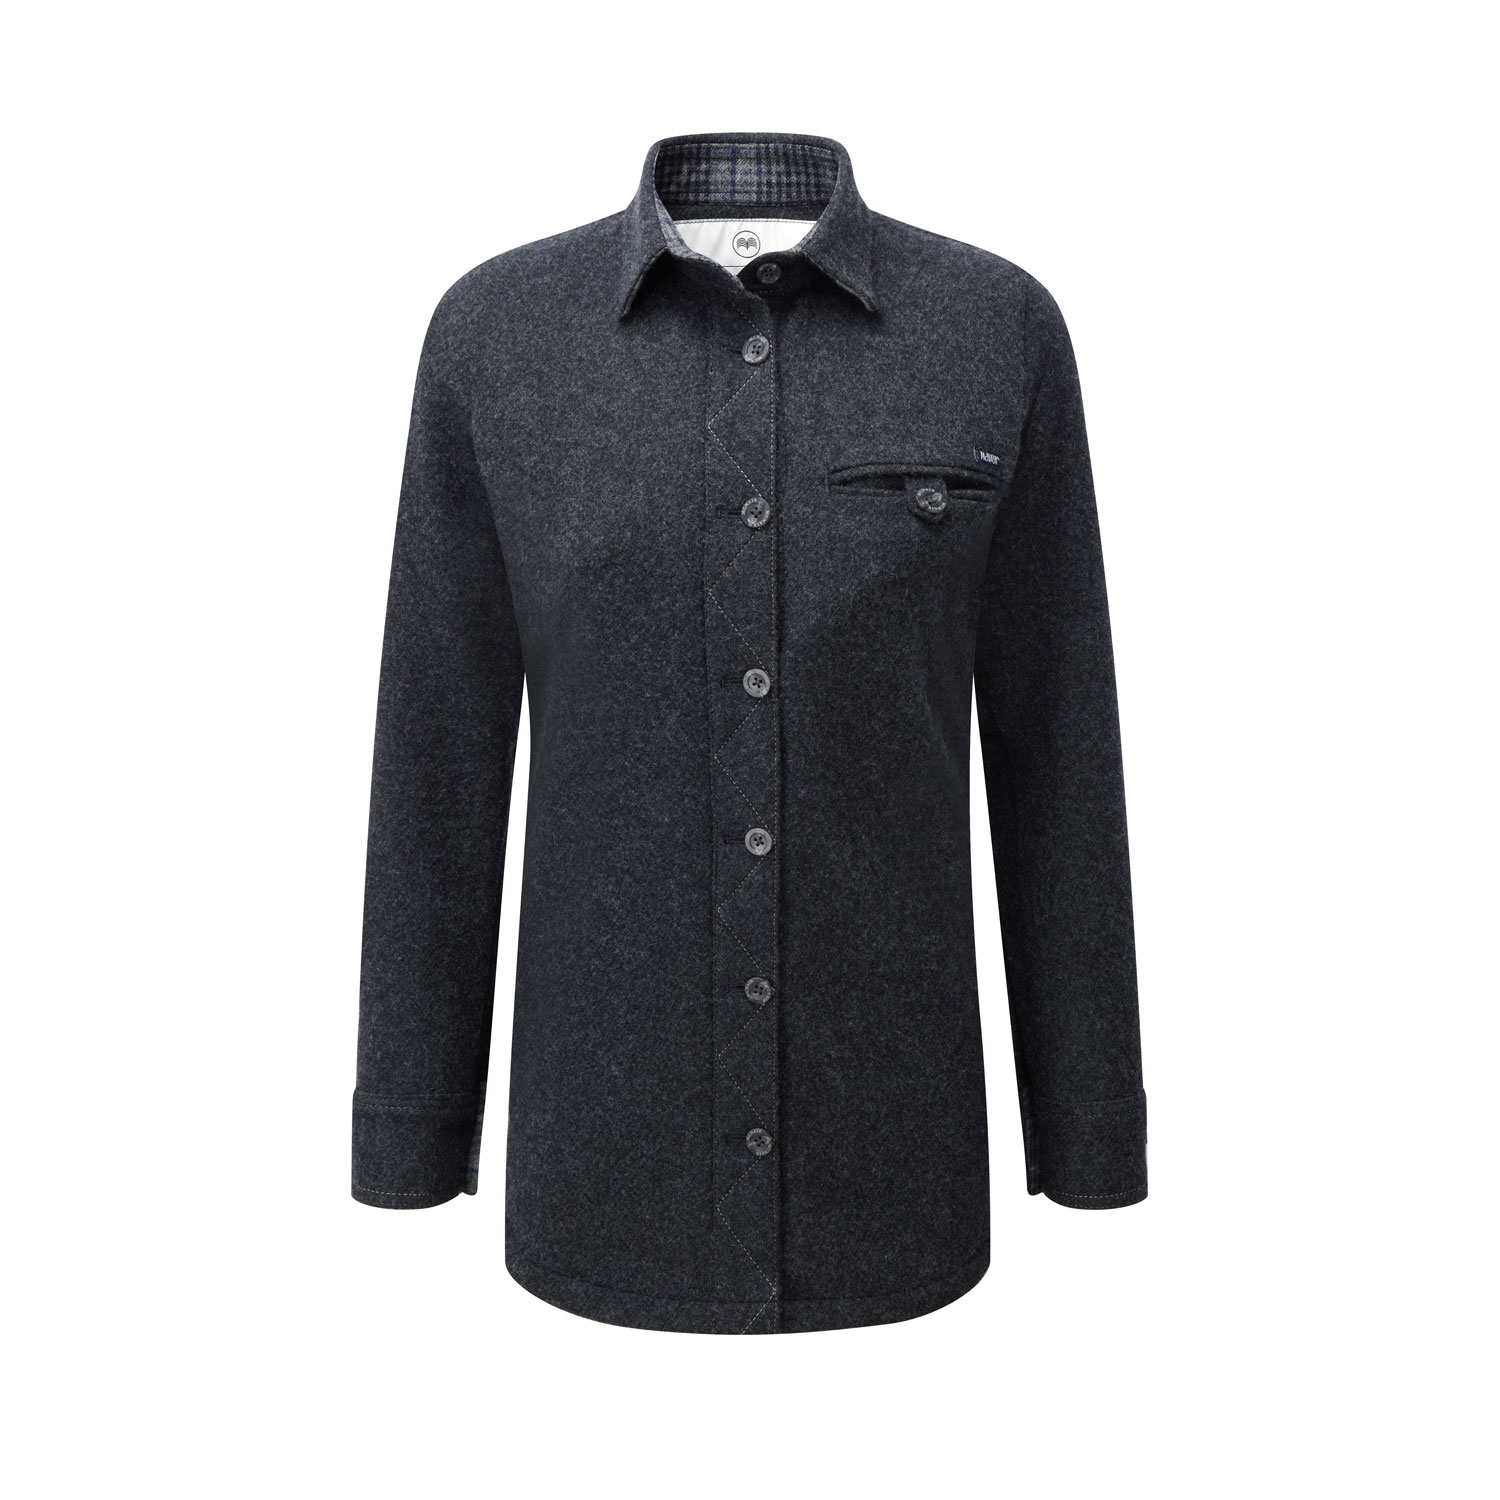 McNair women's merino fell shirt in charcoal